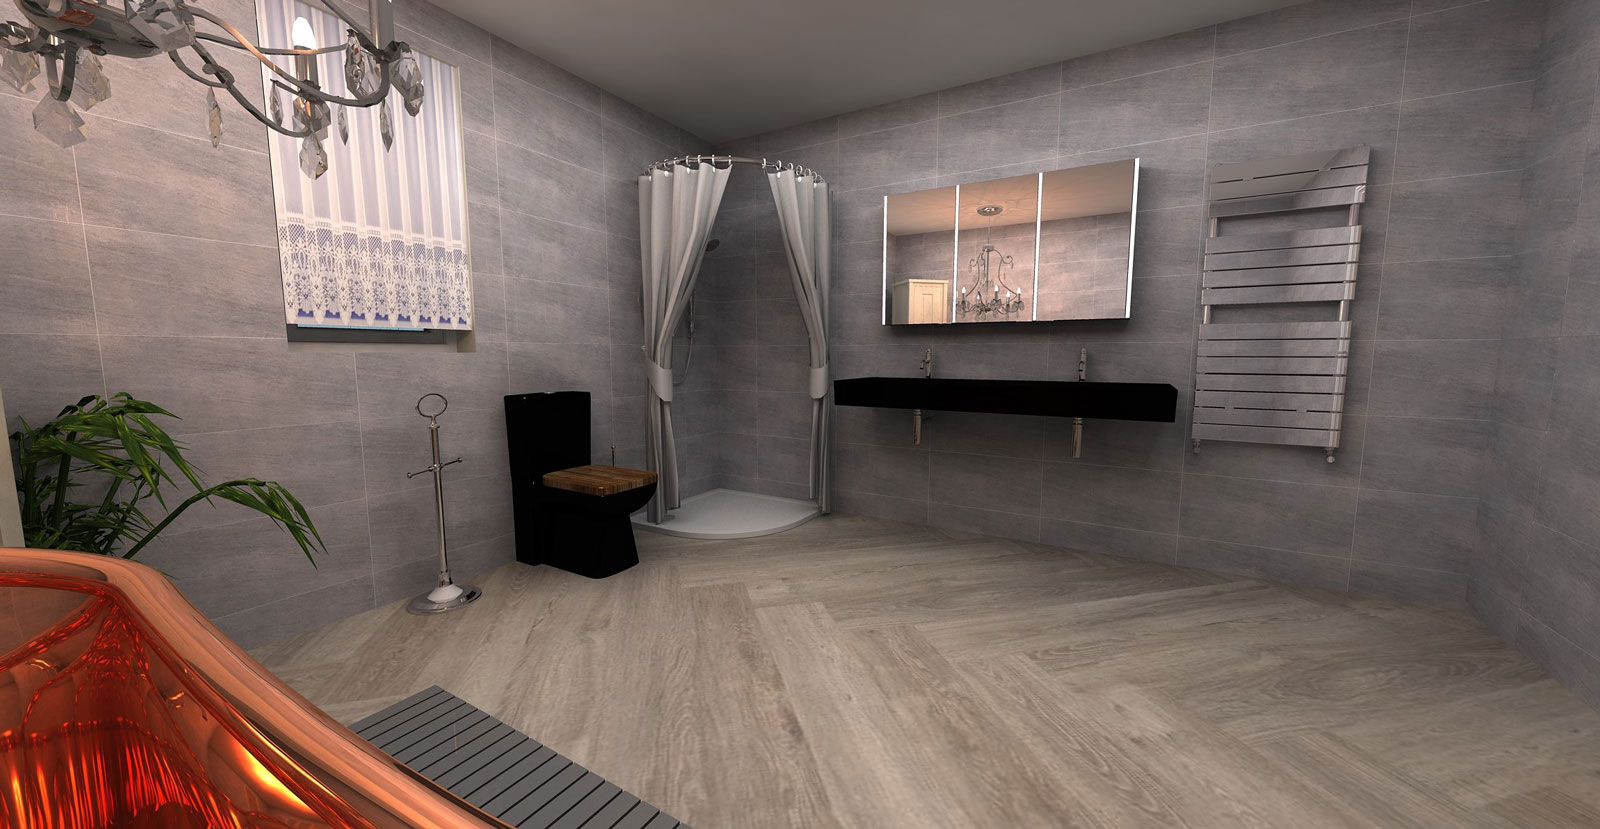 Bathroom Trends: How to Plan a New Bathroom